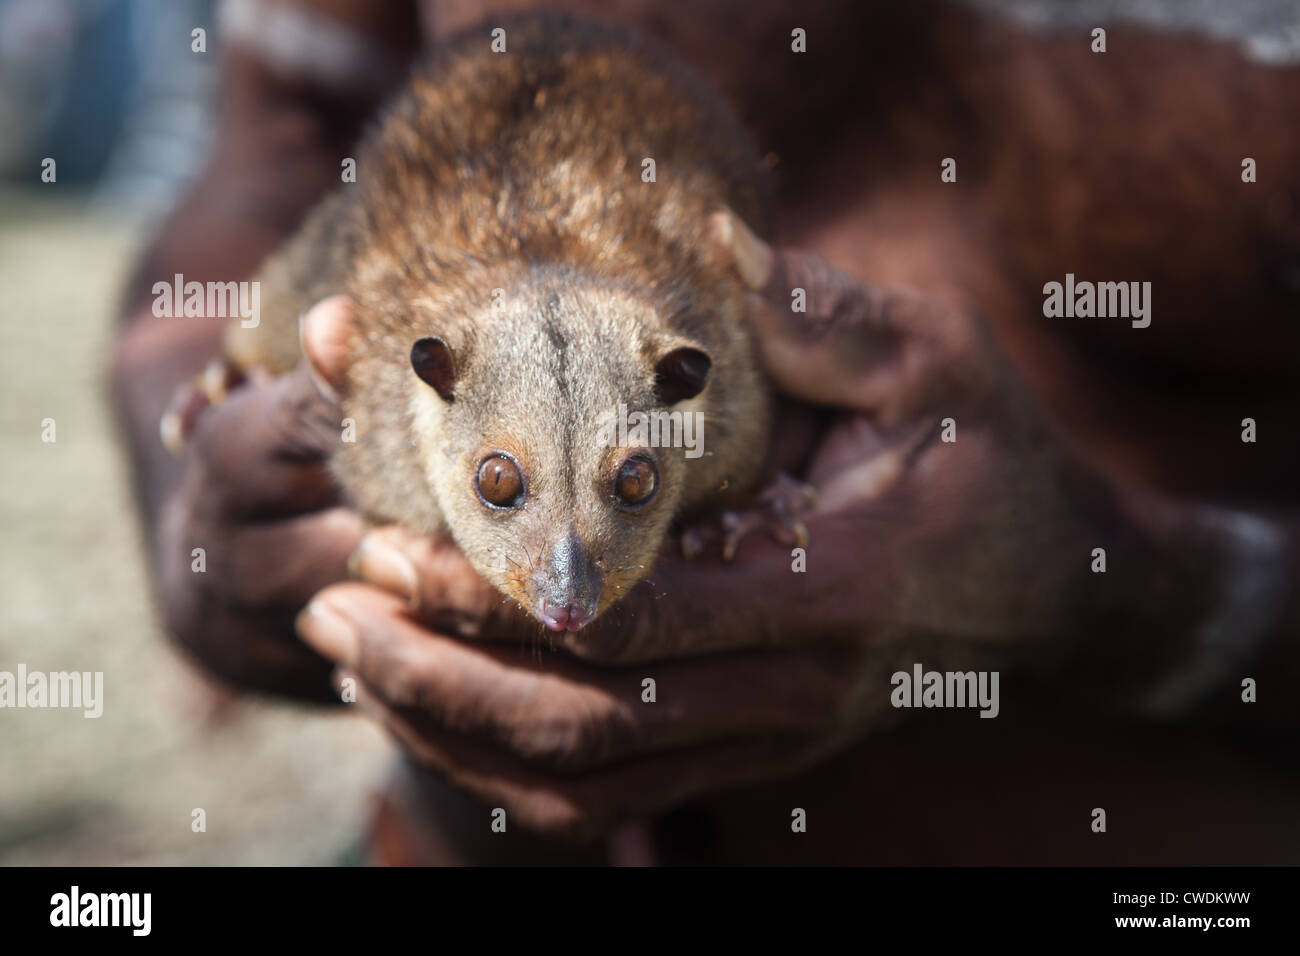 A common spotted cuscus, Spilocuscus maculatus, is a marsupial that lives around the Solomon Islands and New Guinea. - Stock Image